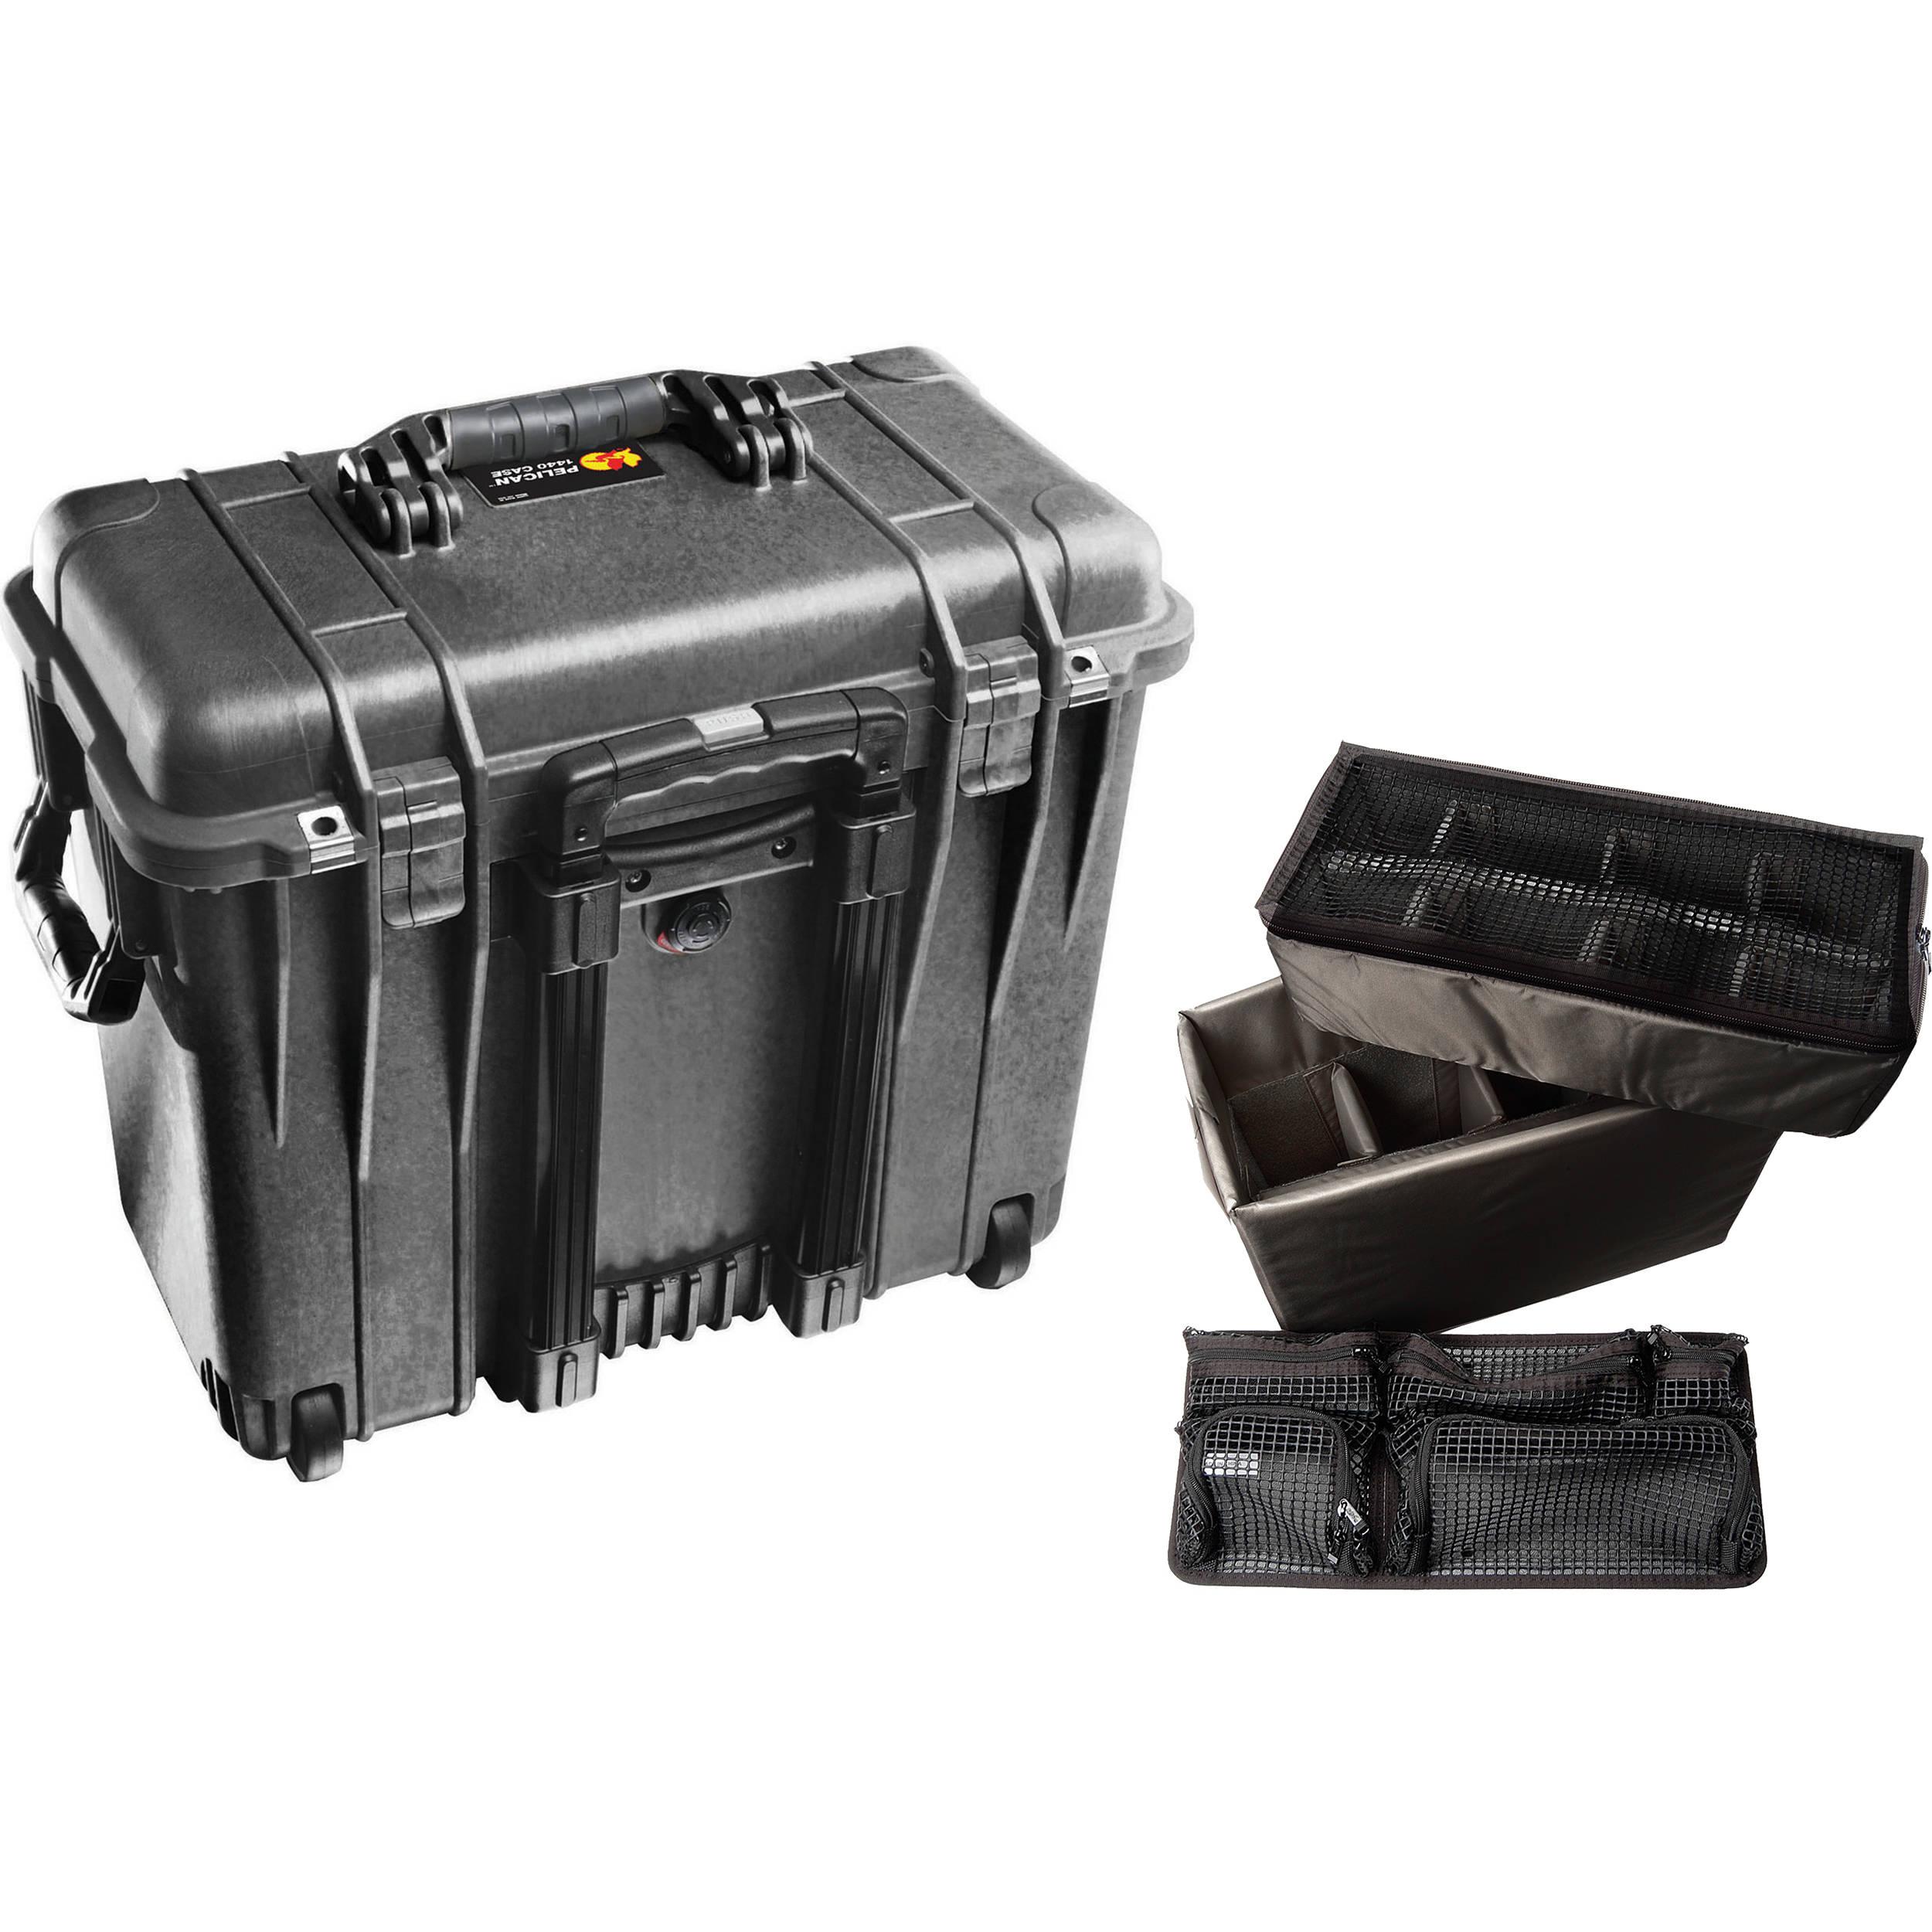 d89305c57cf0 Pelican 1440 Wheeled Top Loader Case with Utility Padded Divider Set and  Lid Organizer (Black)